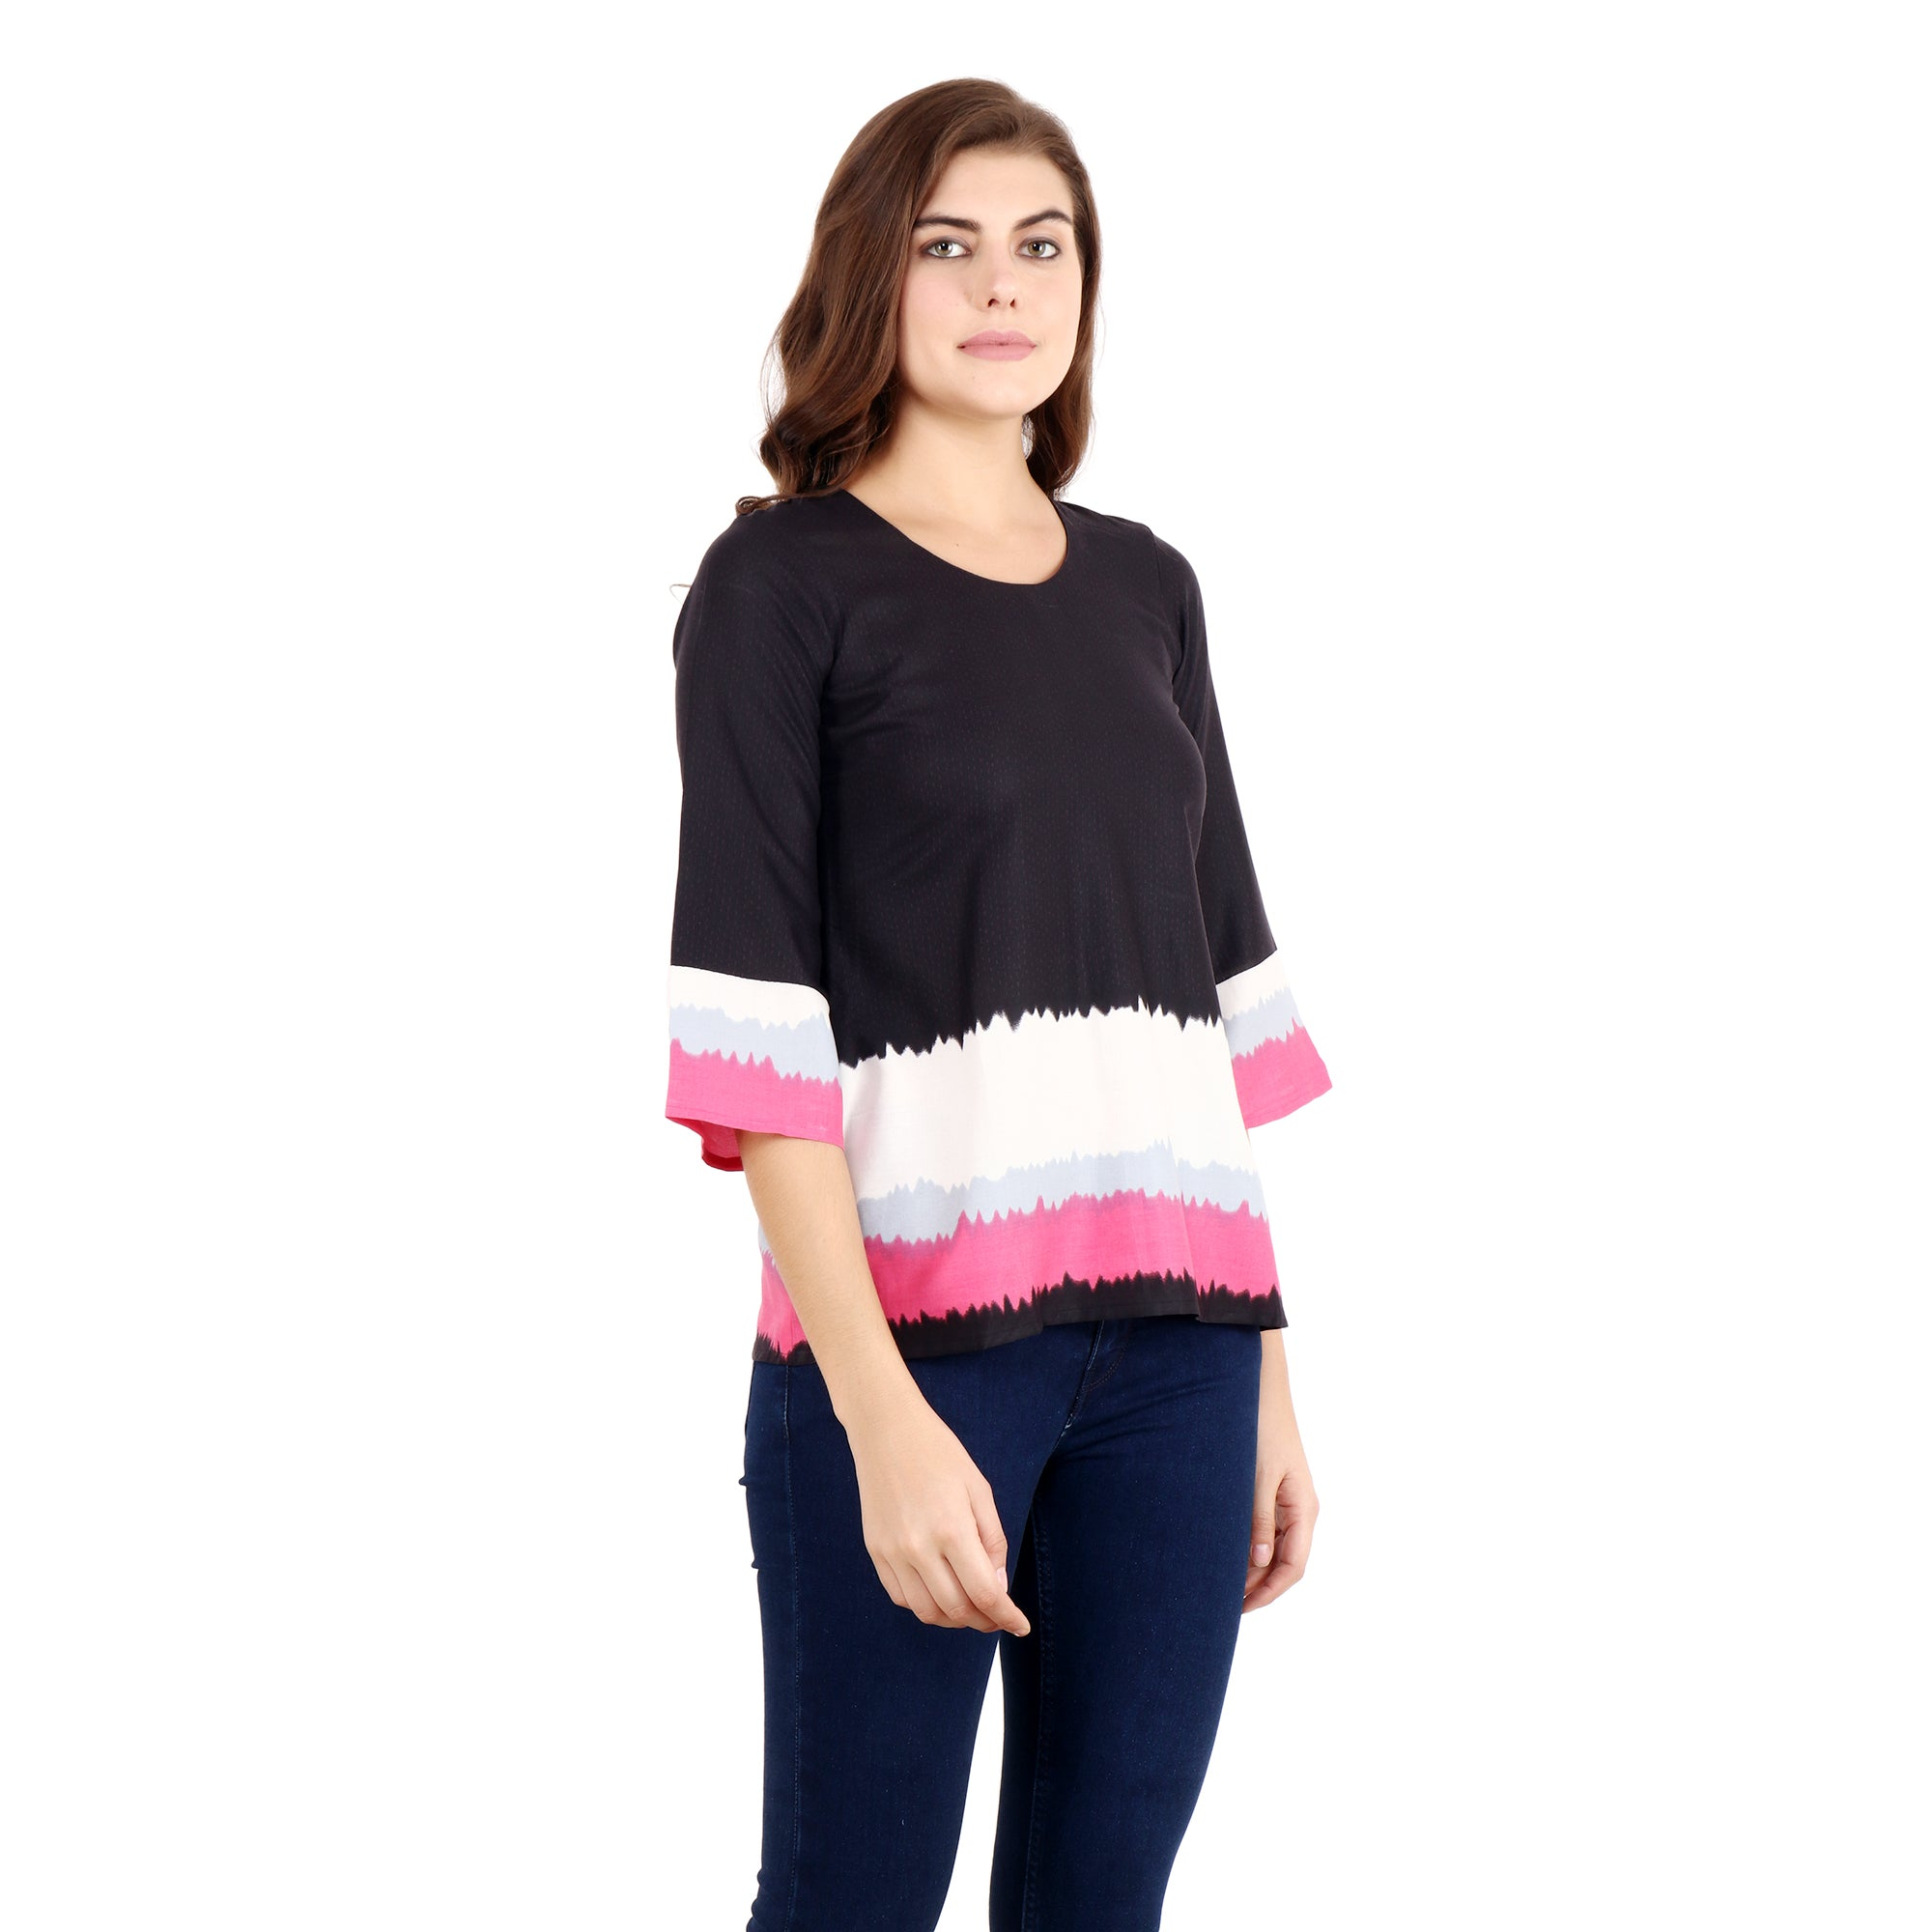 all size, best online store, black, breathable, casual, comfortable, floral, loose, maternity, multicolor, nursing, pink, plus size, pluz size, pregnancy, rayon, reasonable price, shaded, ski